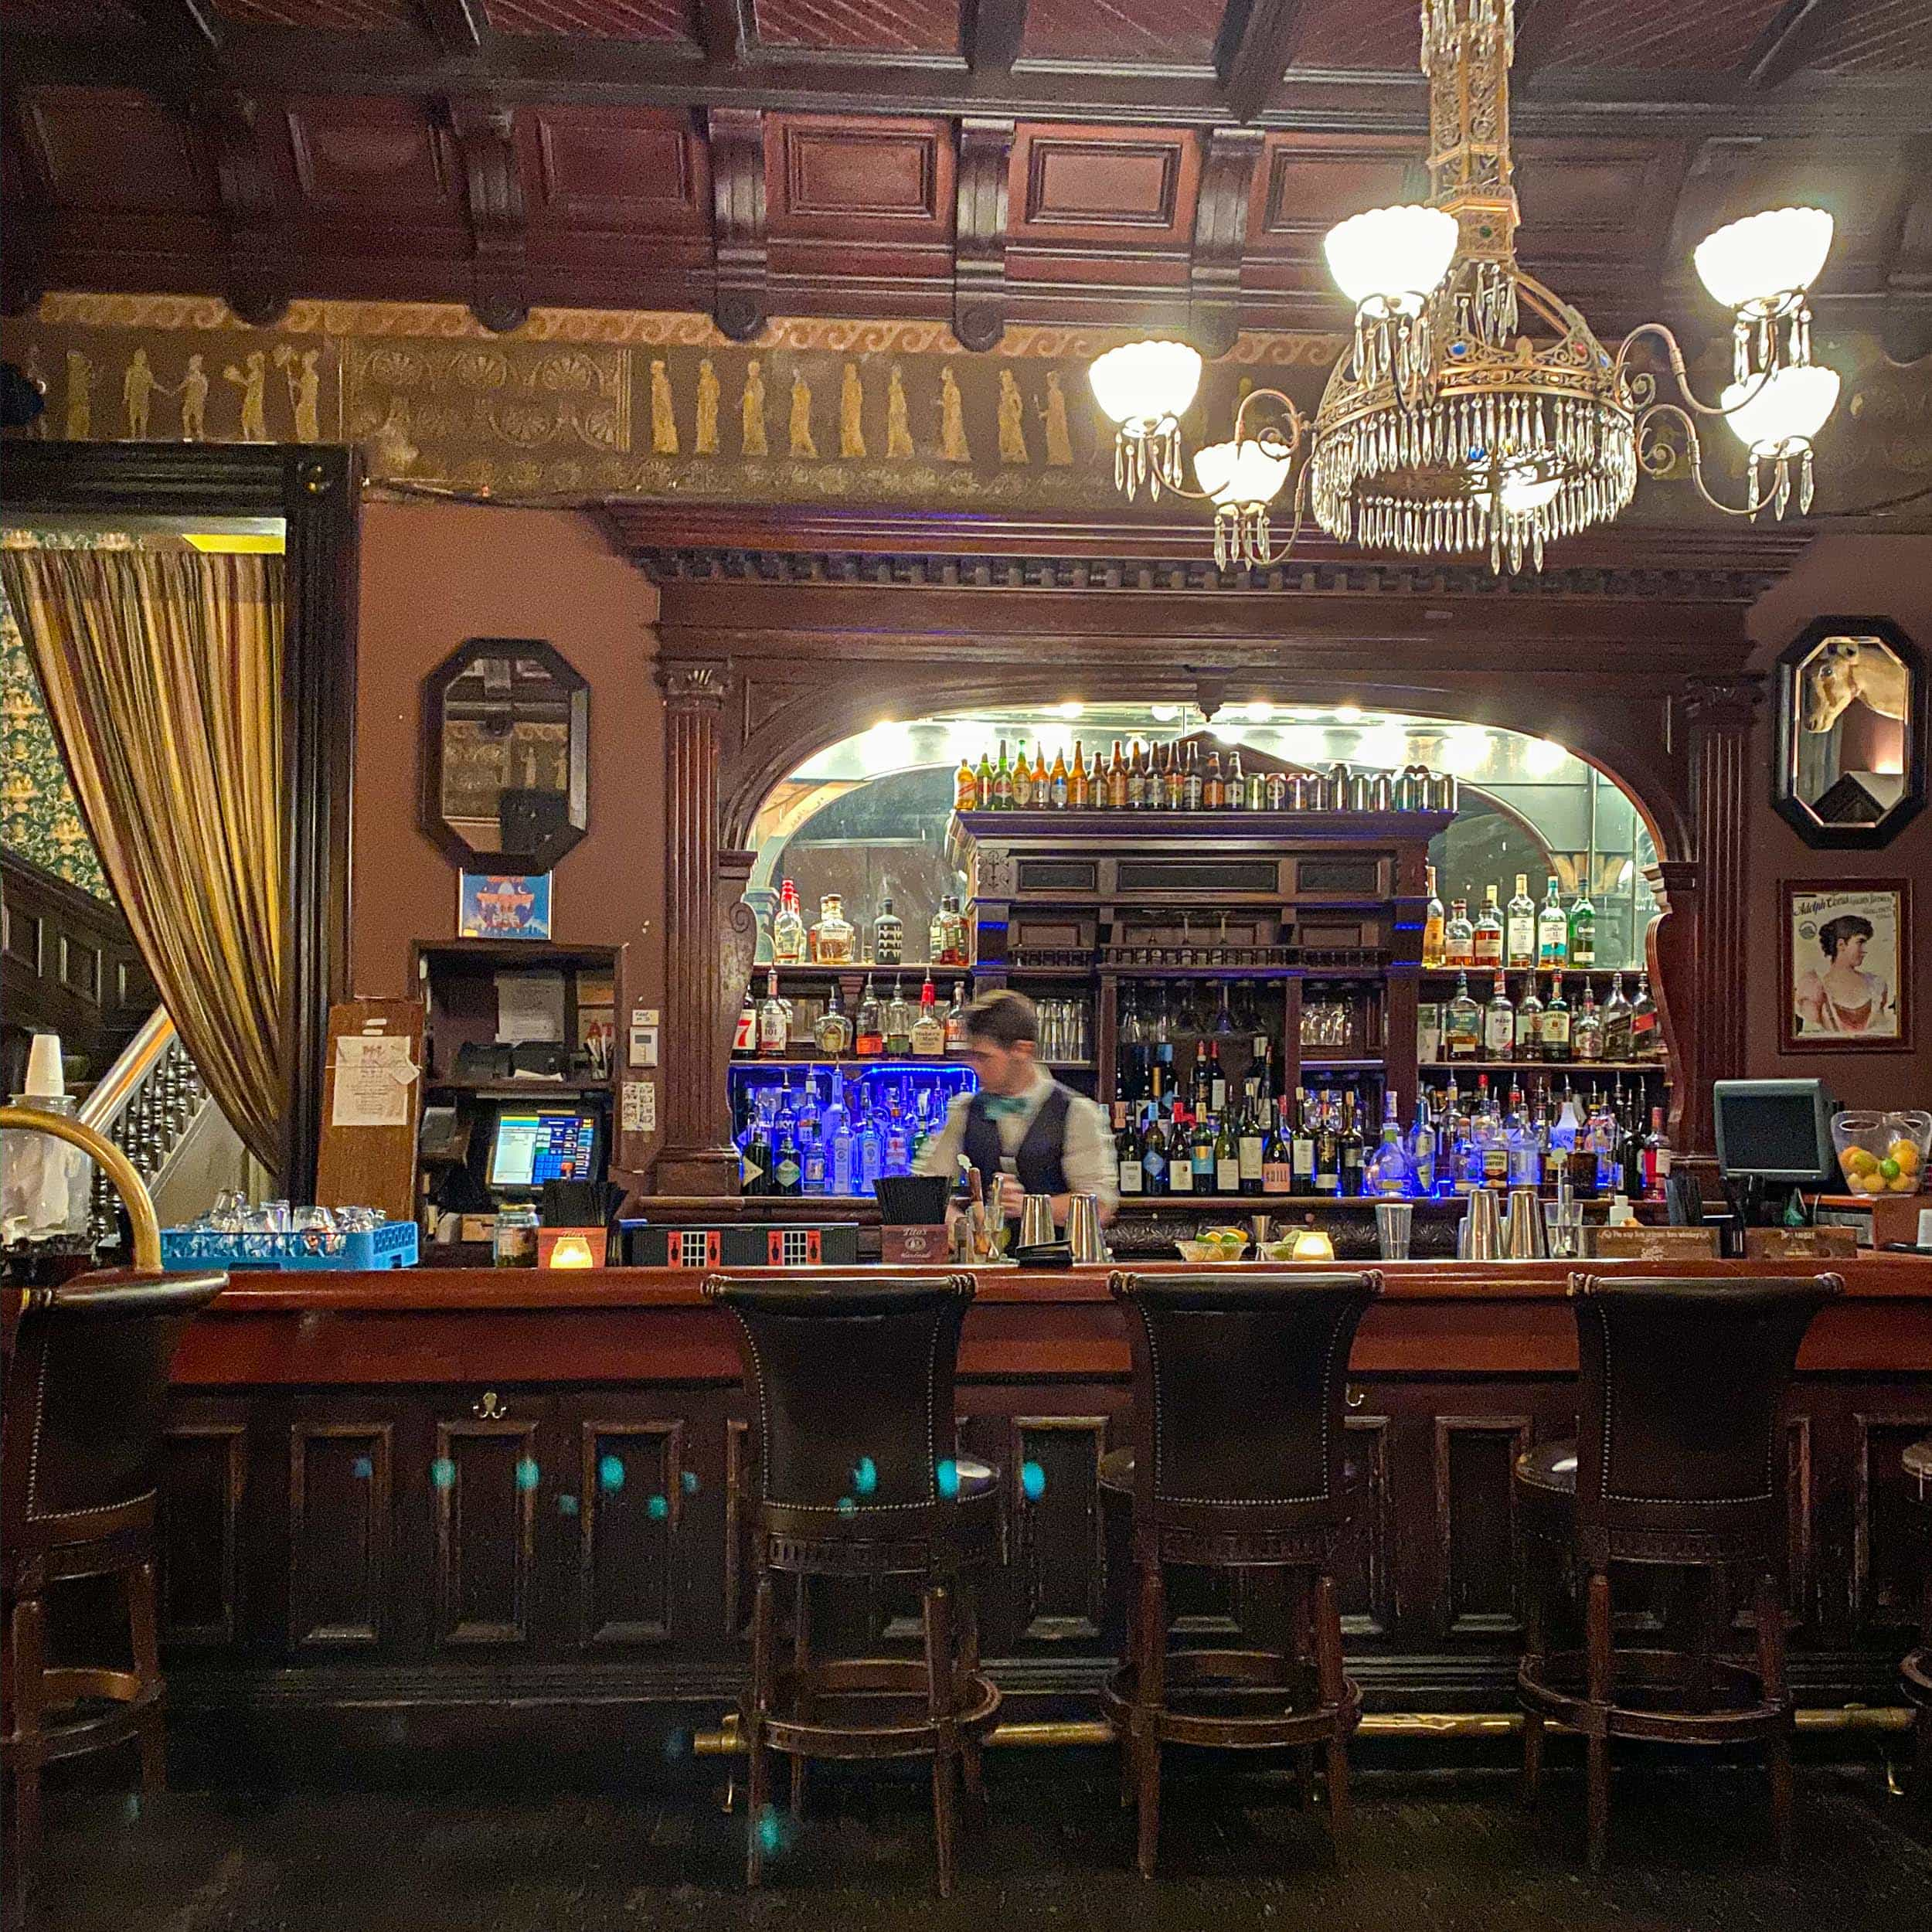 One of the coolest cocktail bars in New Orleans is at the Columns Hotel